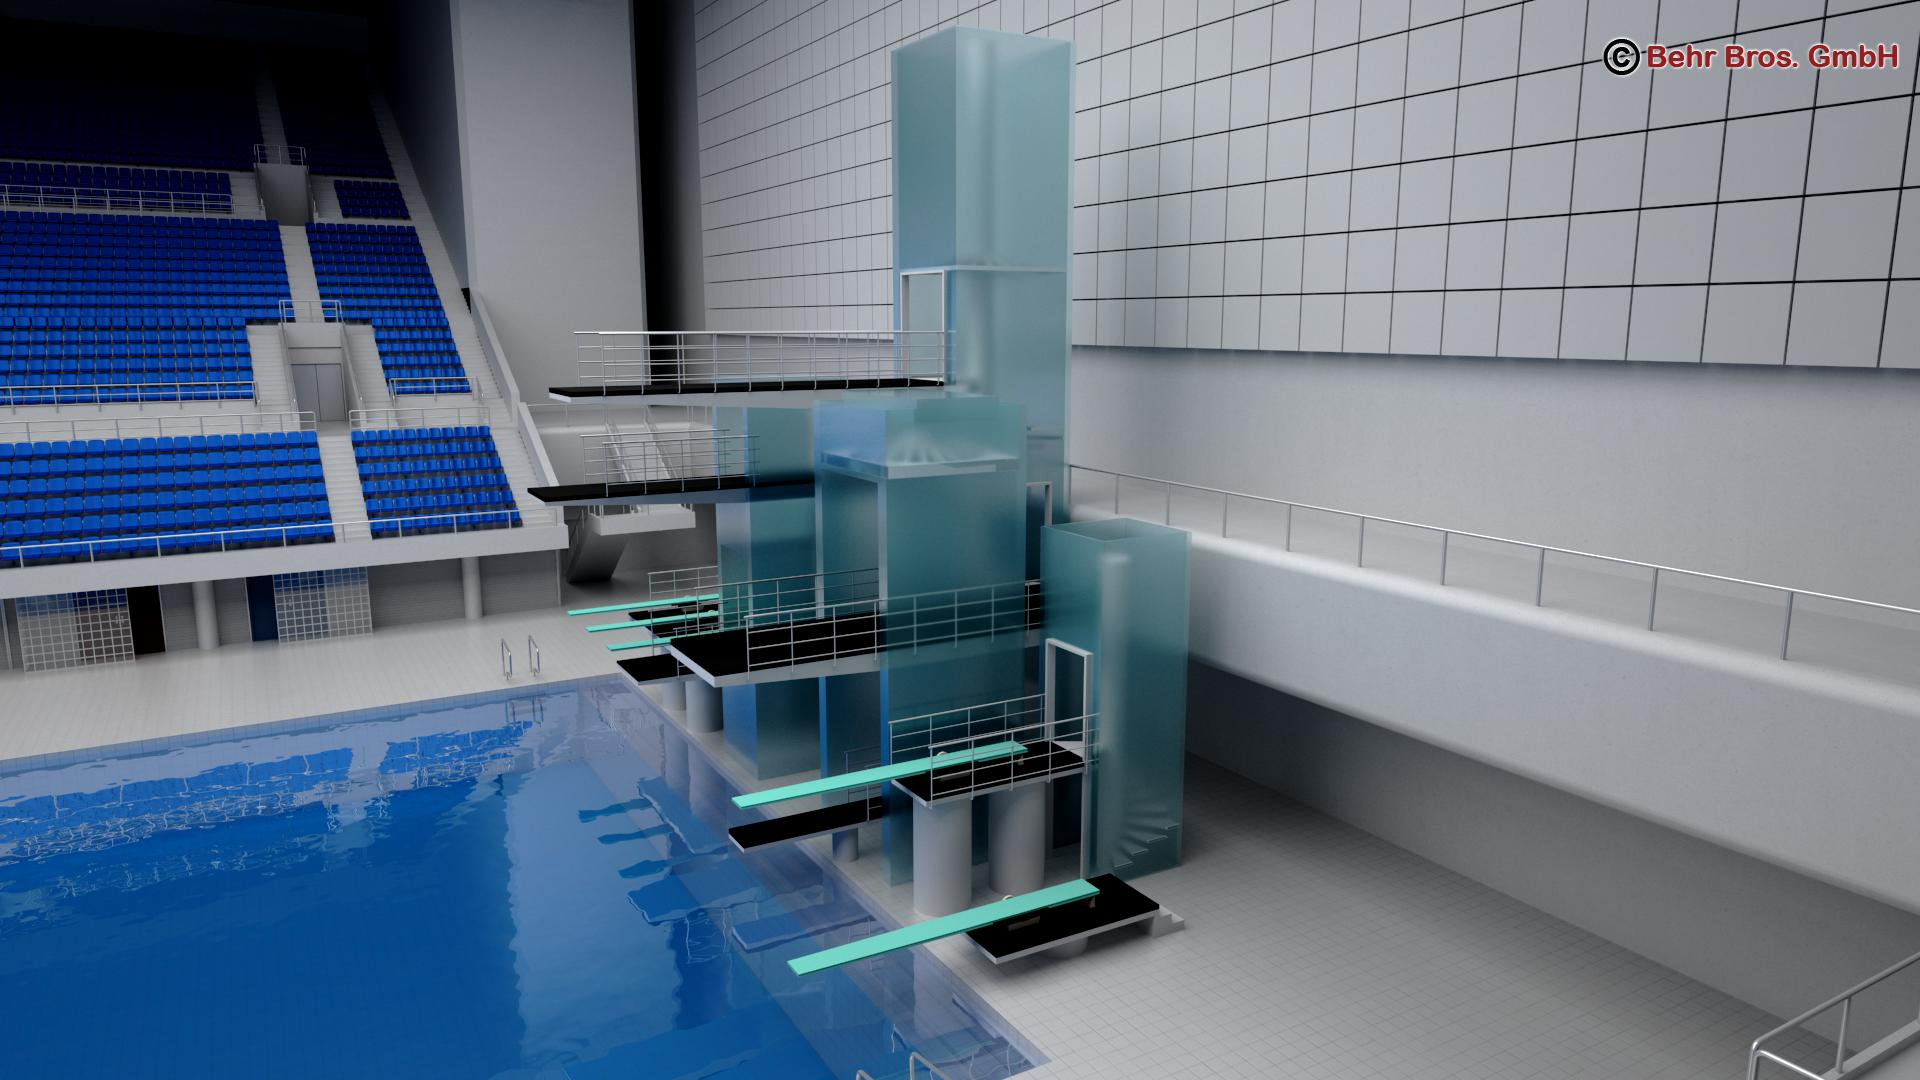 swim stadium 3d model 3ds max fbx c4d lwo ma mb obj 204433